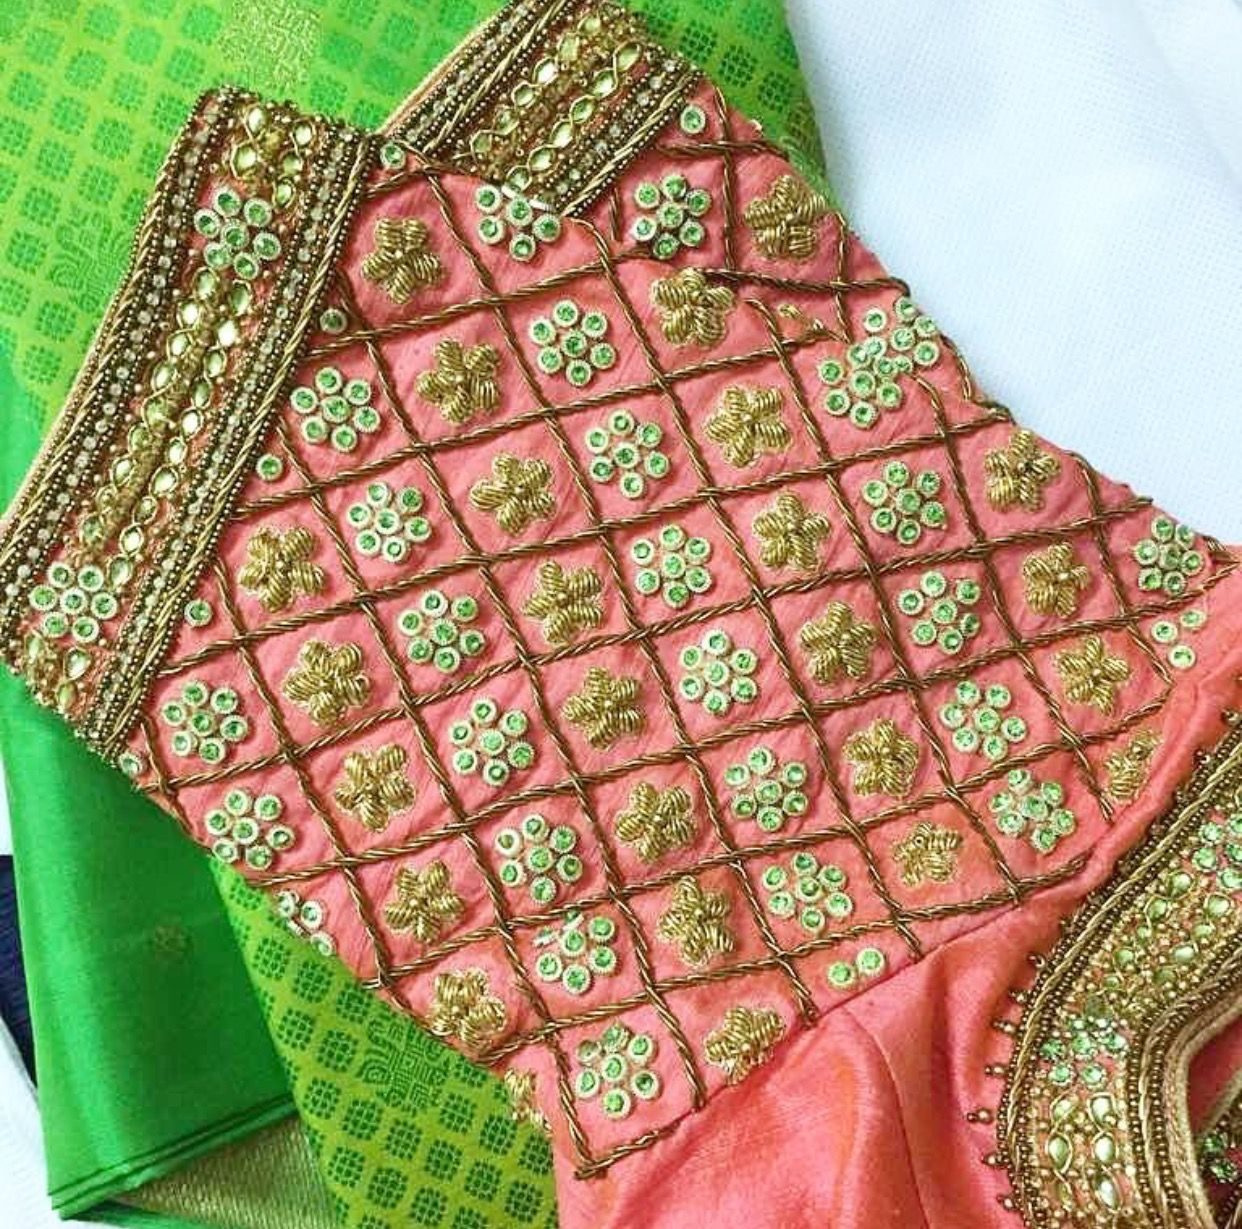 Pin by nandhini raj on blouse designs pinterest blouse designs embroidery stitches tutorial hand embroidery pearl embroidery embroidery works mirror work blouse wedding blouses blouse patterns blouse designs bankloansurffo Images